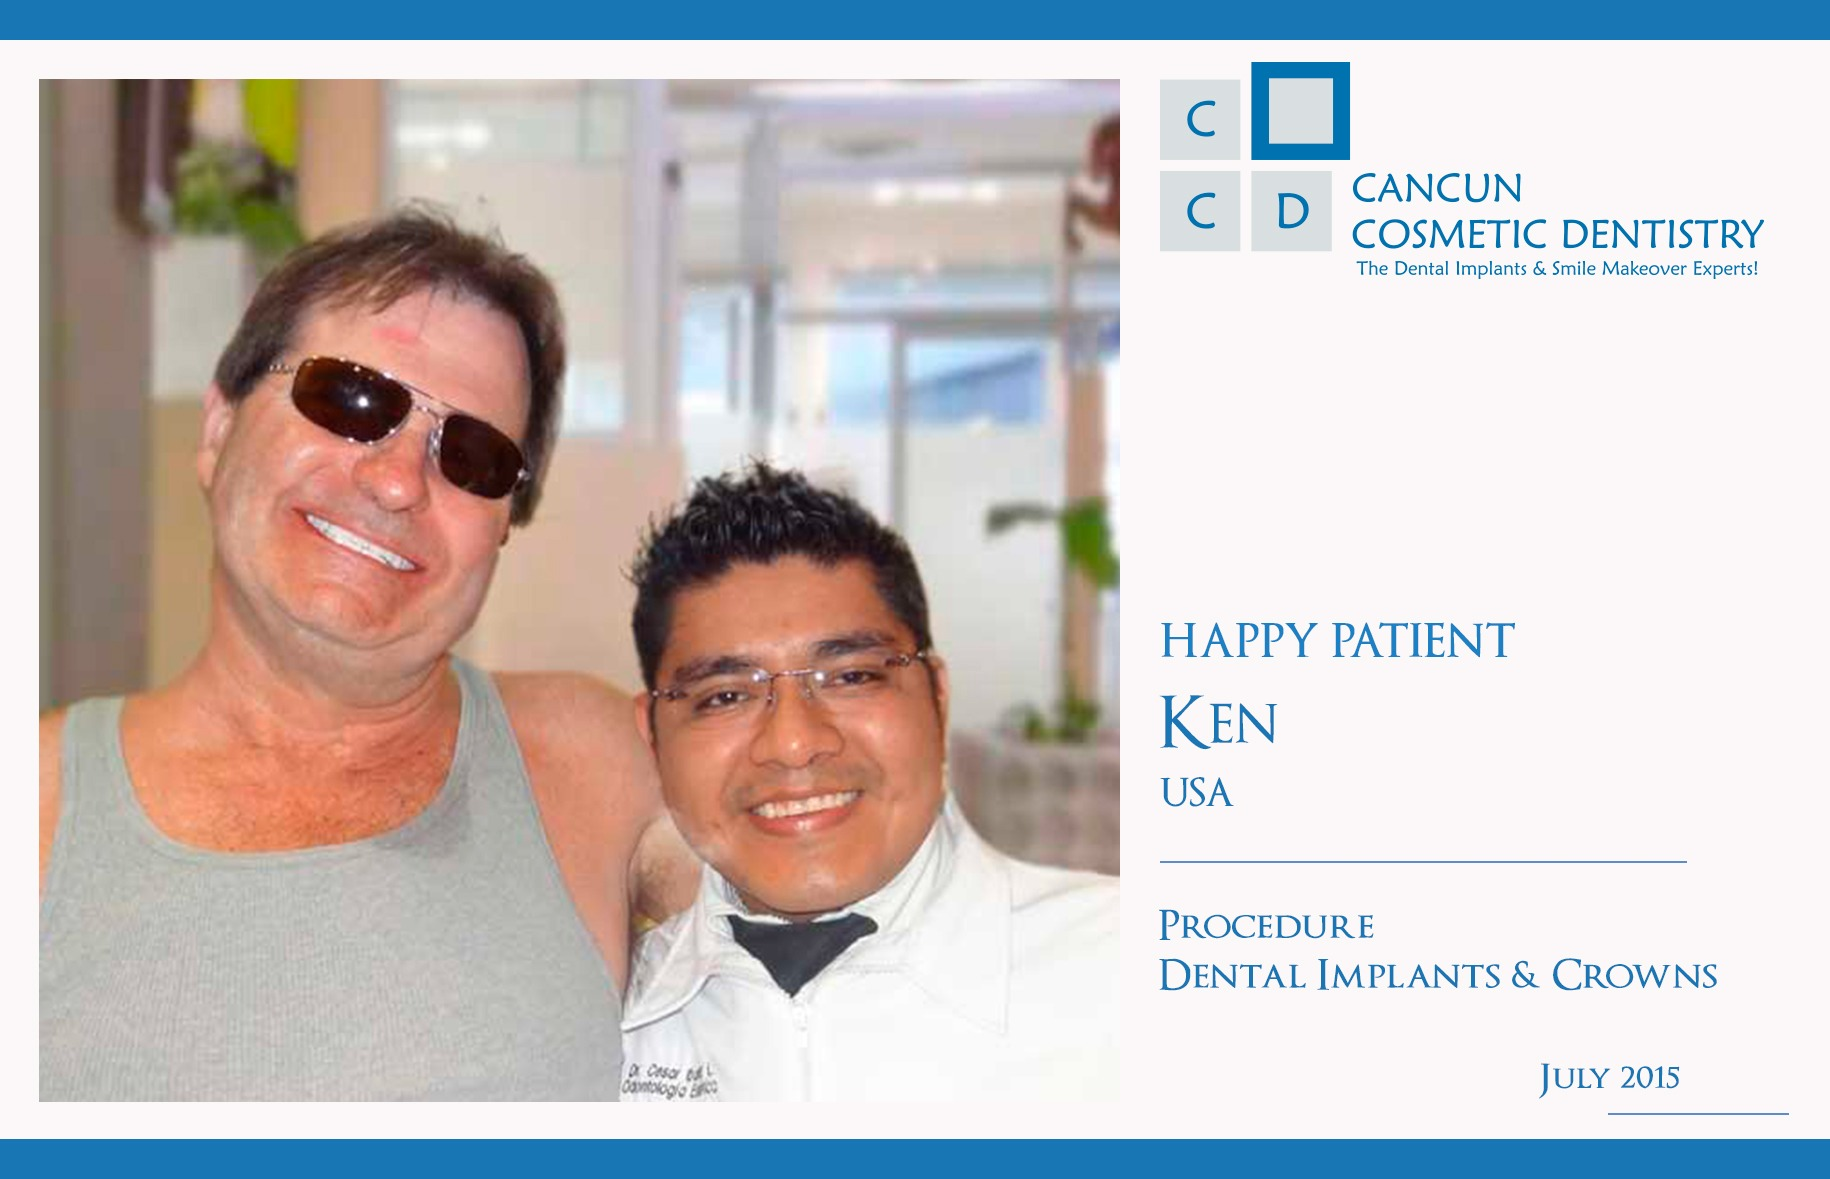 Dental Implants and Crown Cancun Cosmetic Dentistry Review Happy Patient